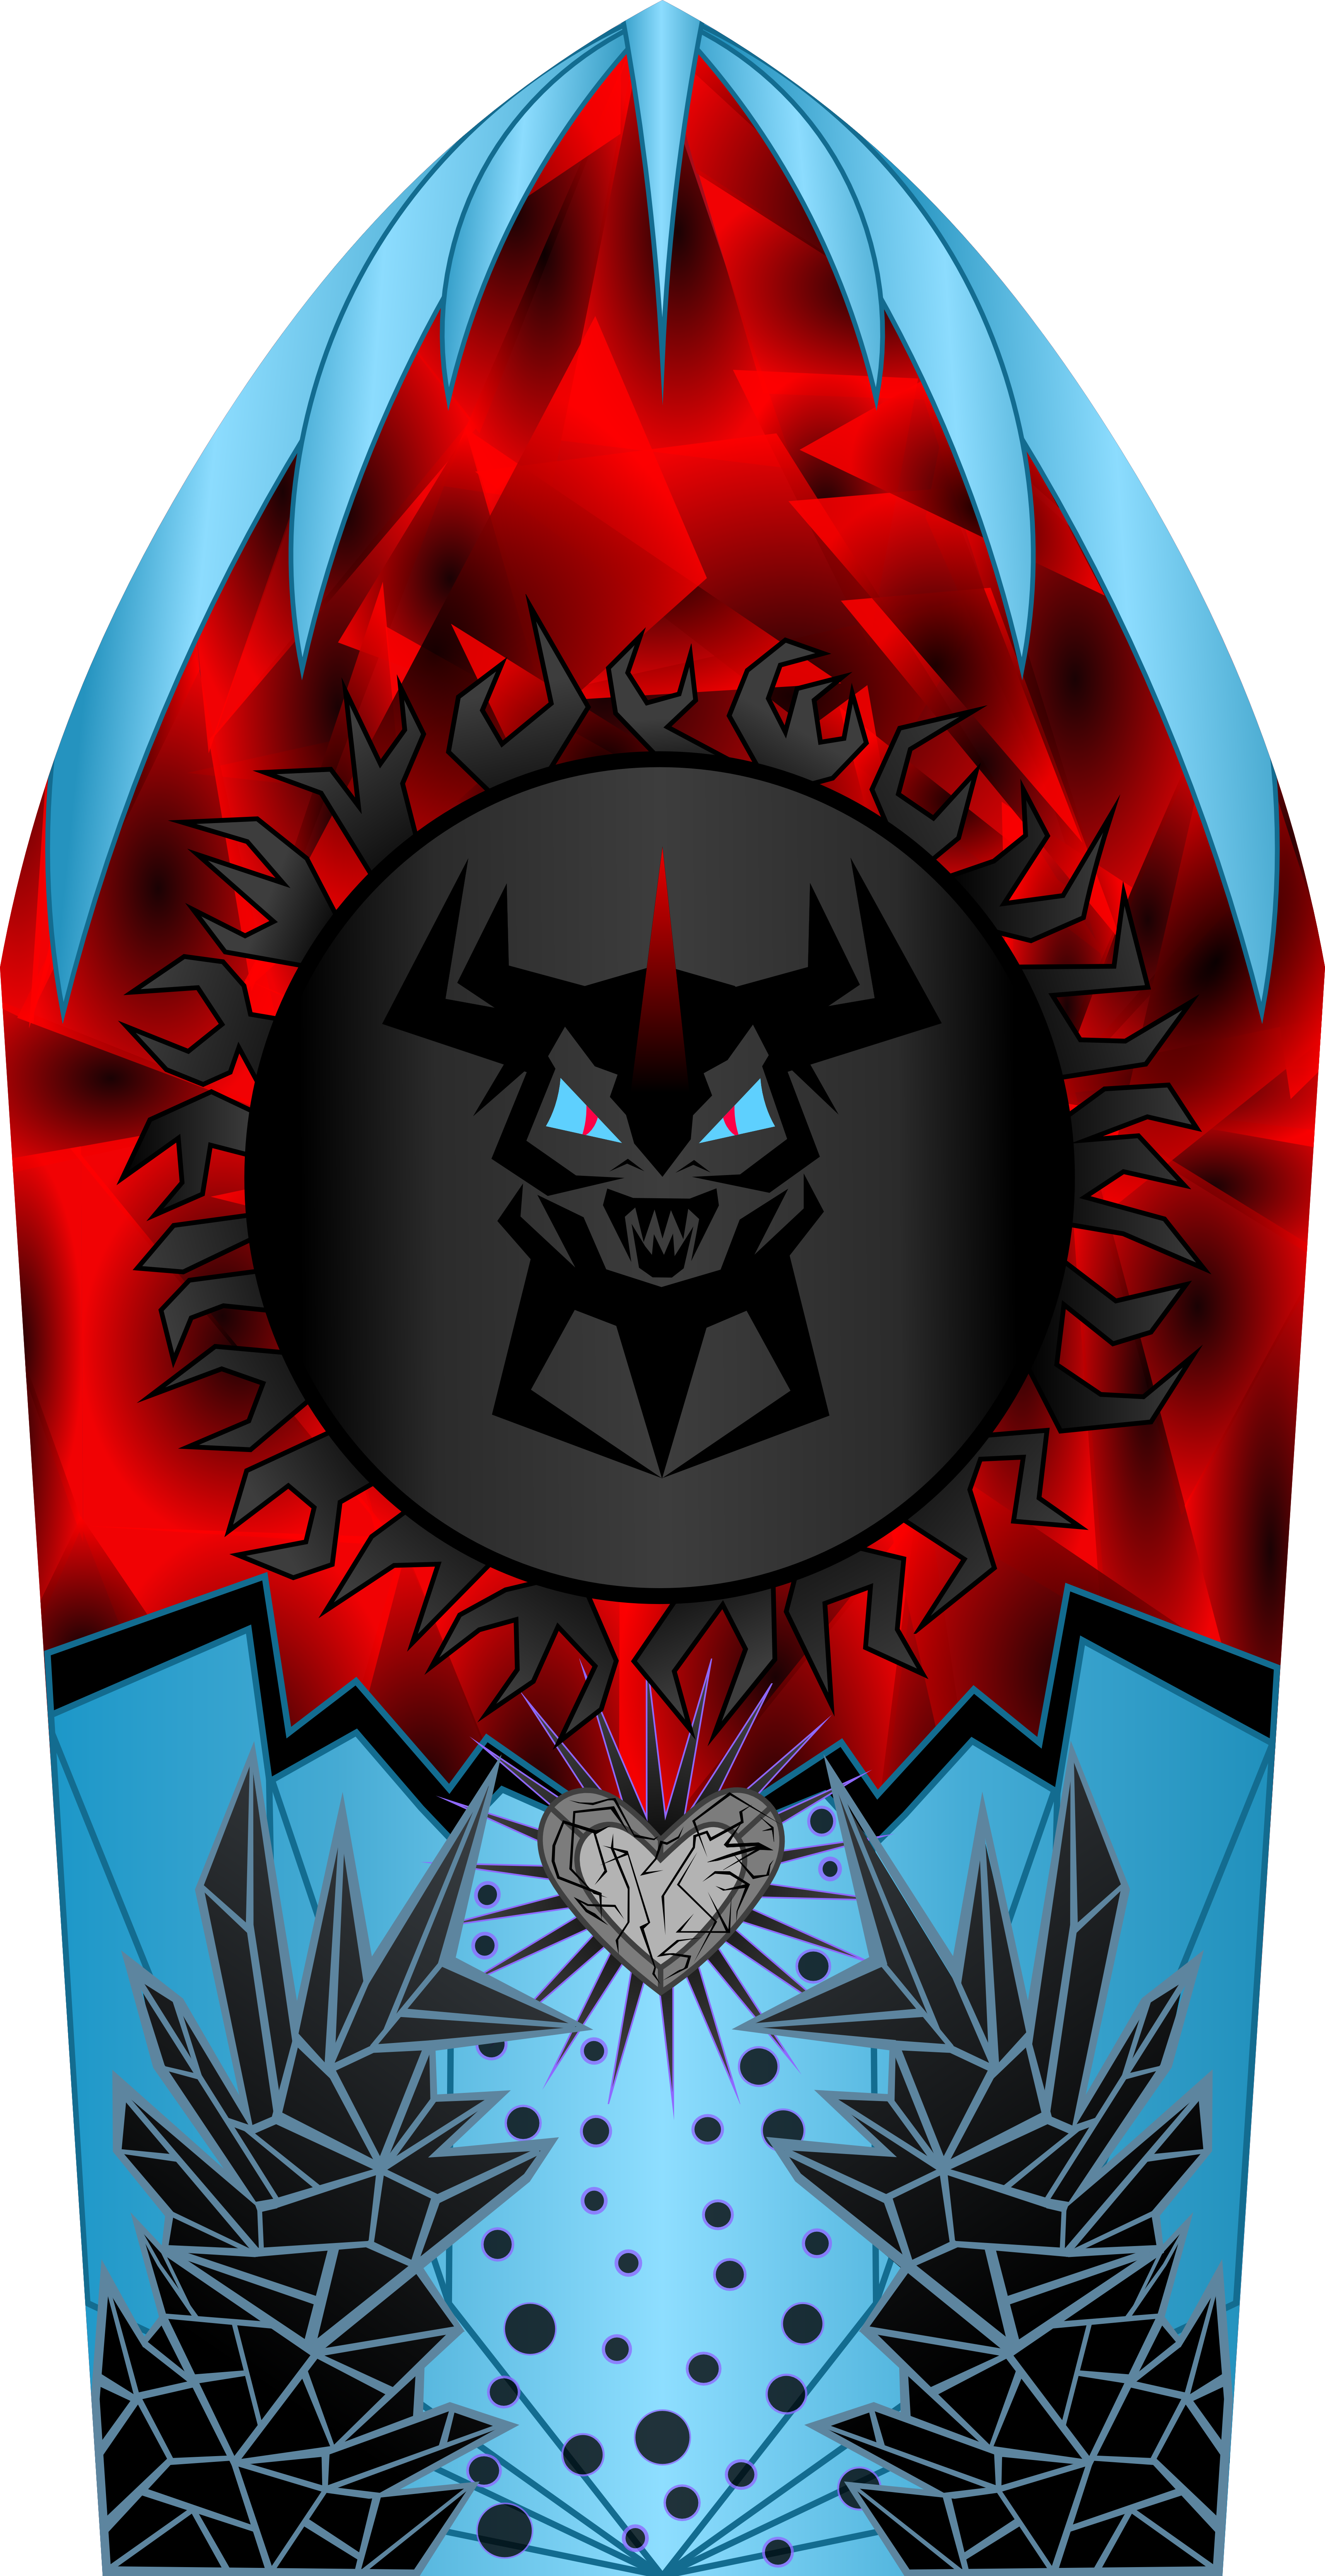 Stained Glass: King Sombra corrupted crystal heart by Legat-BF